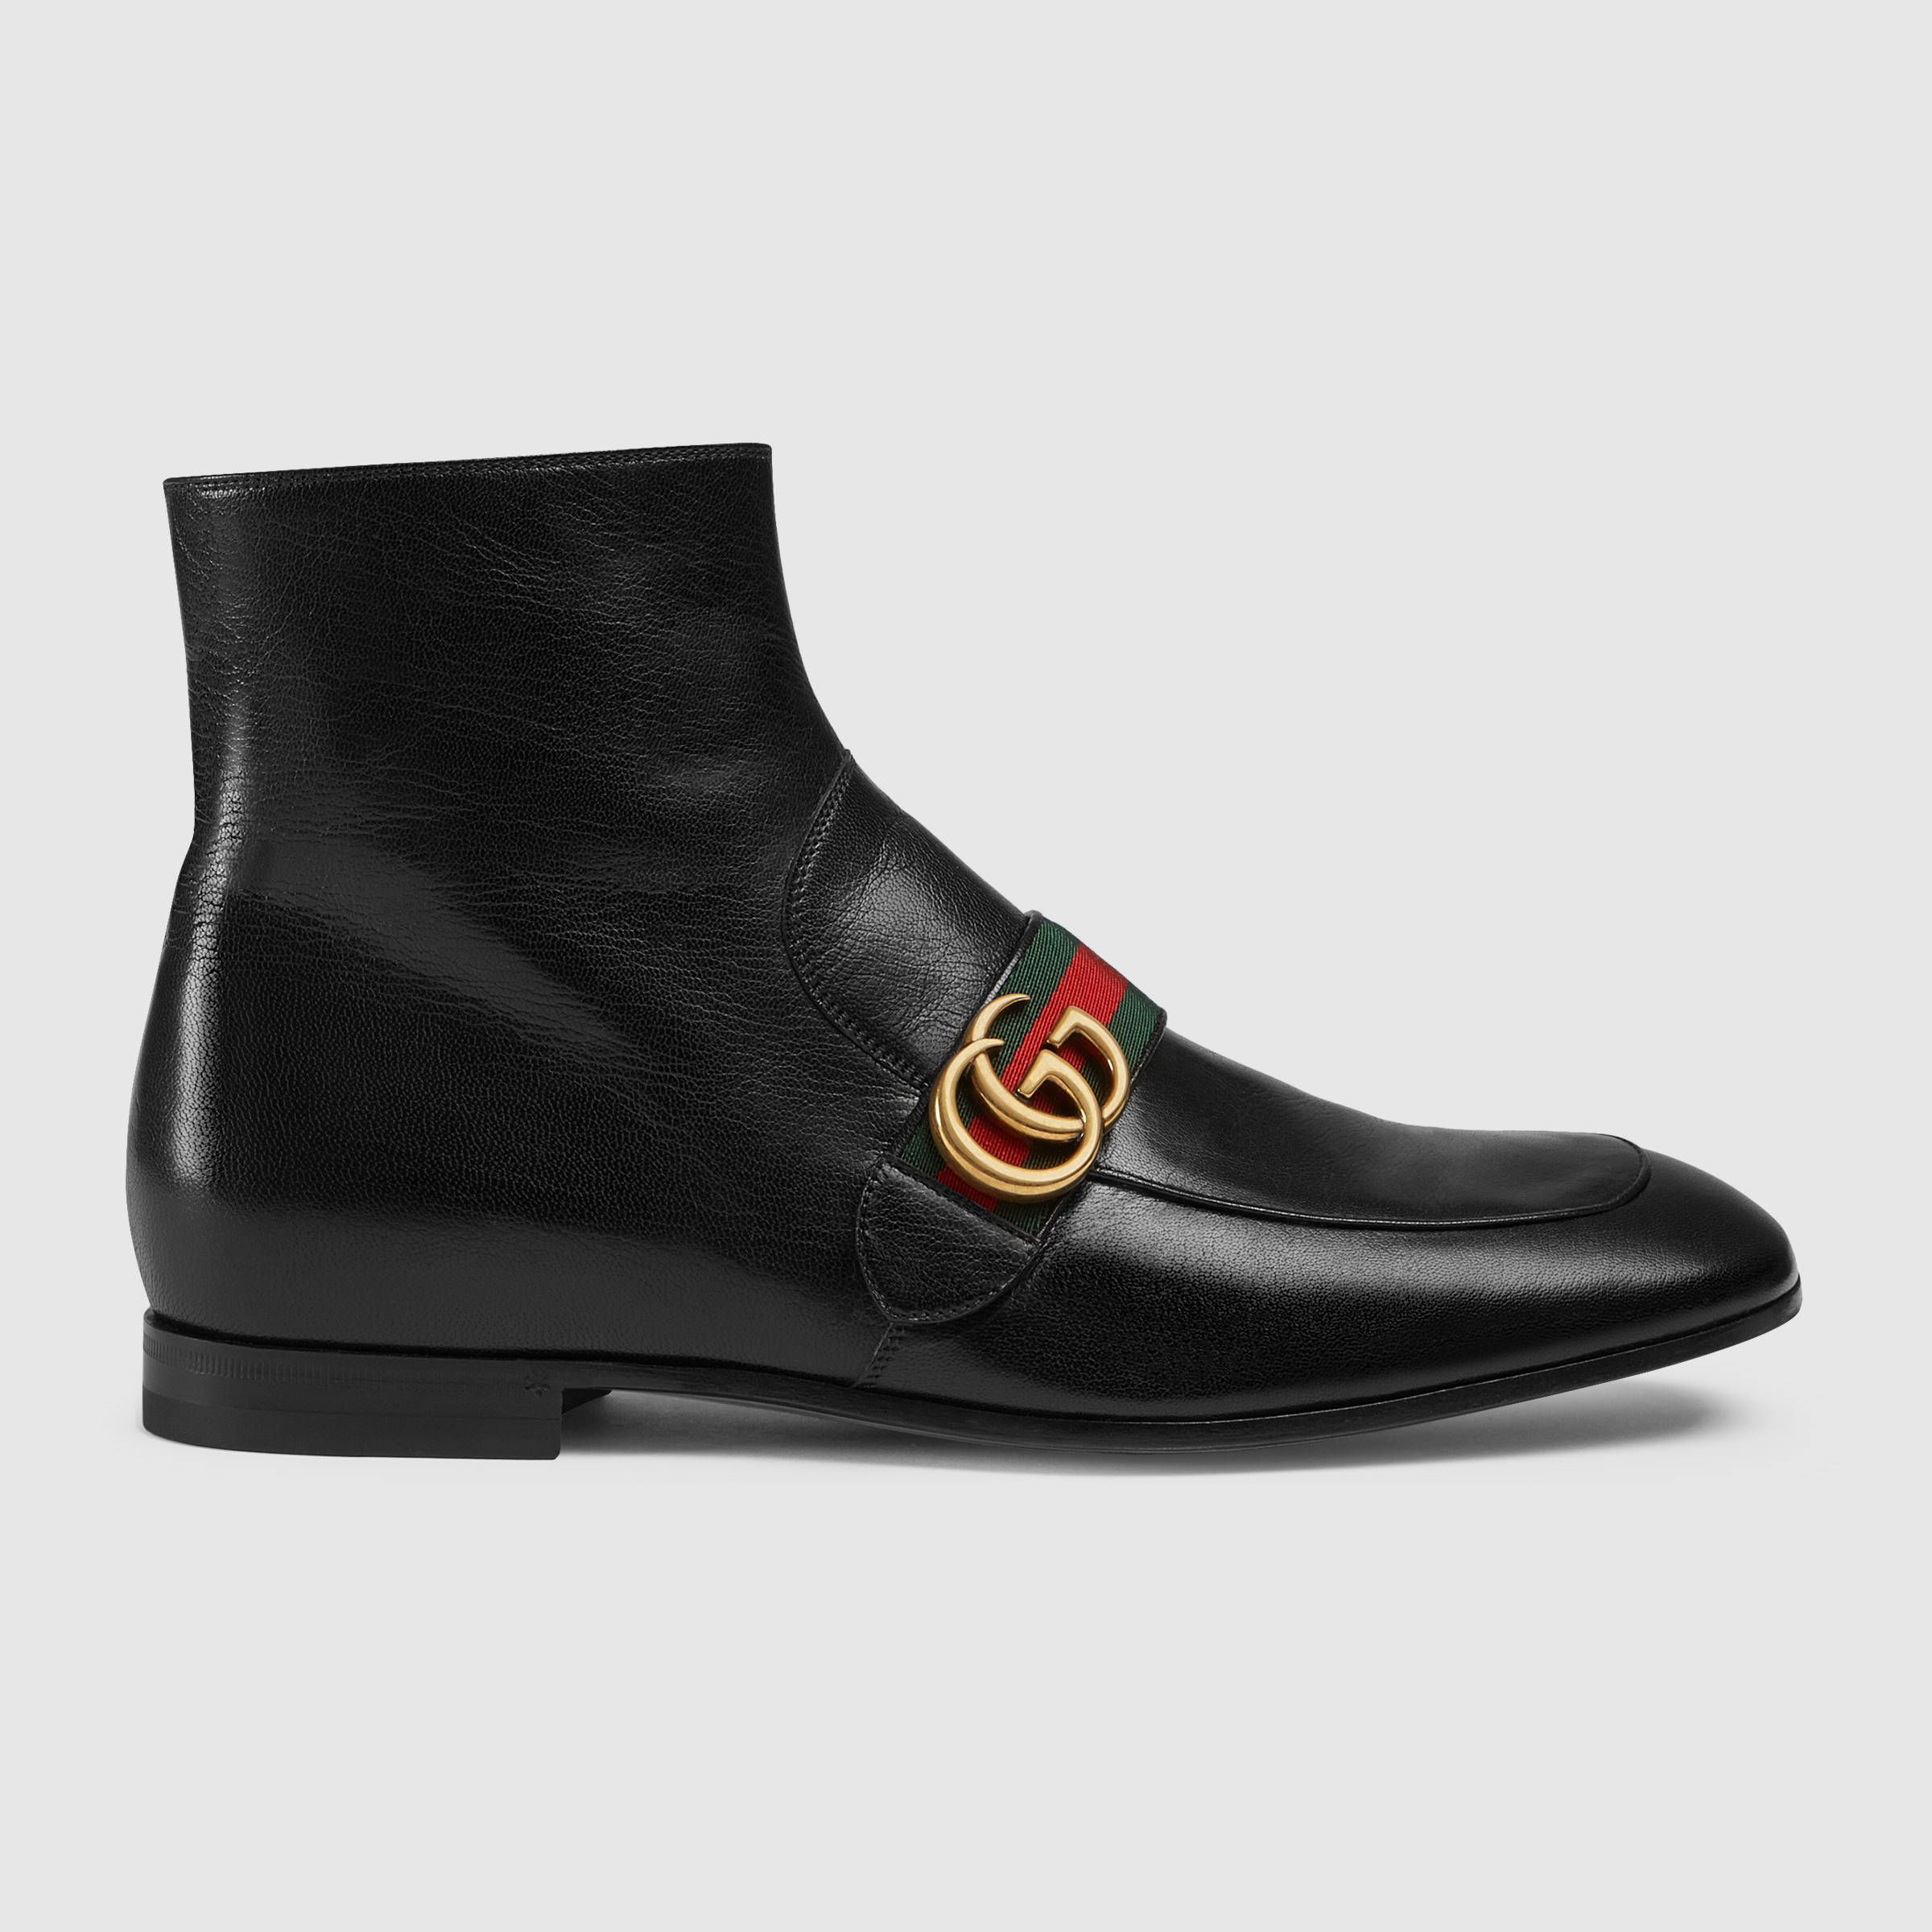 1 050 Gucci Leather Boot With Double G In Brown Or Black Sold By Gucci Affiliate The Leather Ankle Gucci Men Shoes Mens Leather Boots Mens Designer Boots